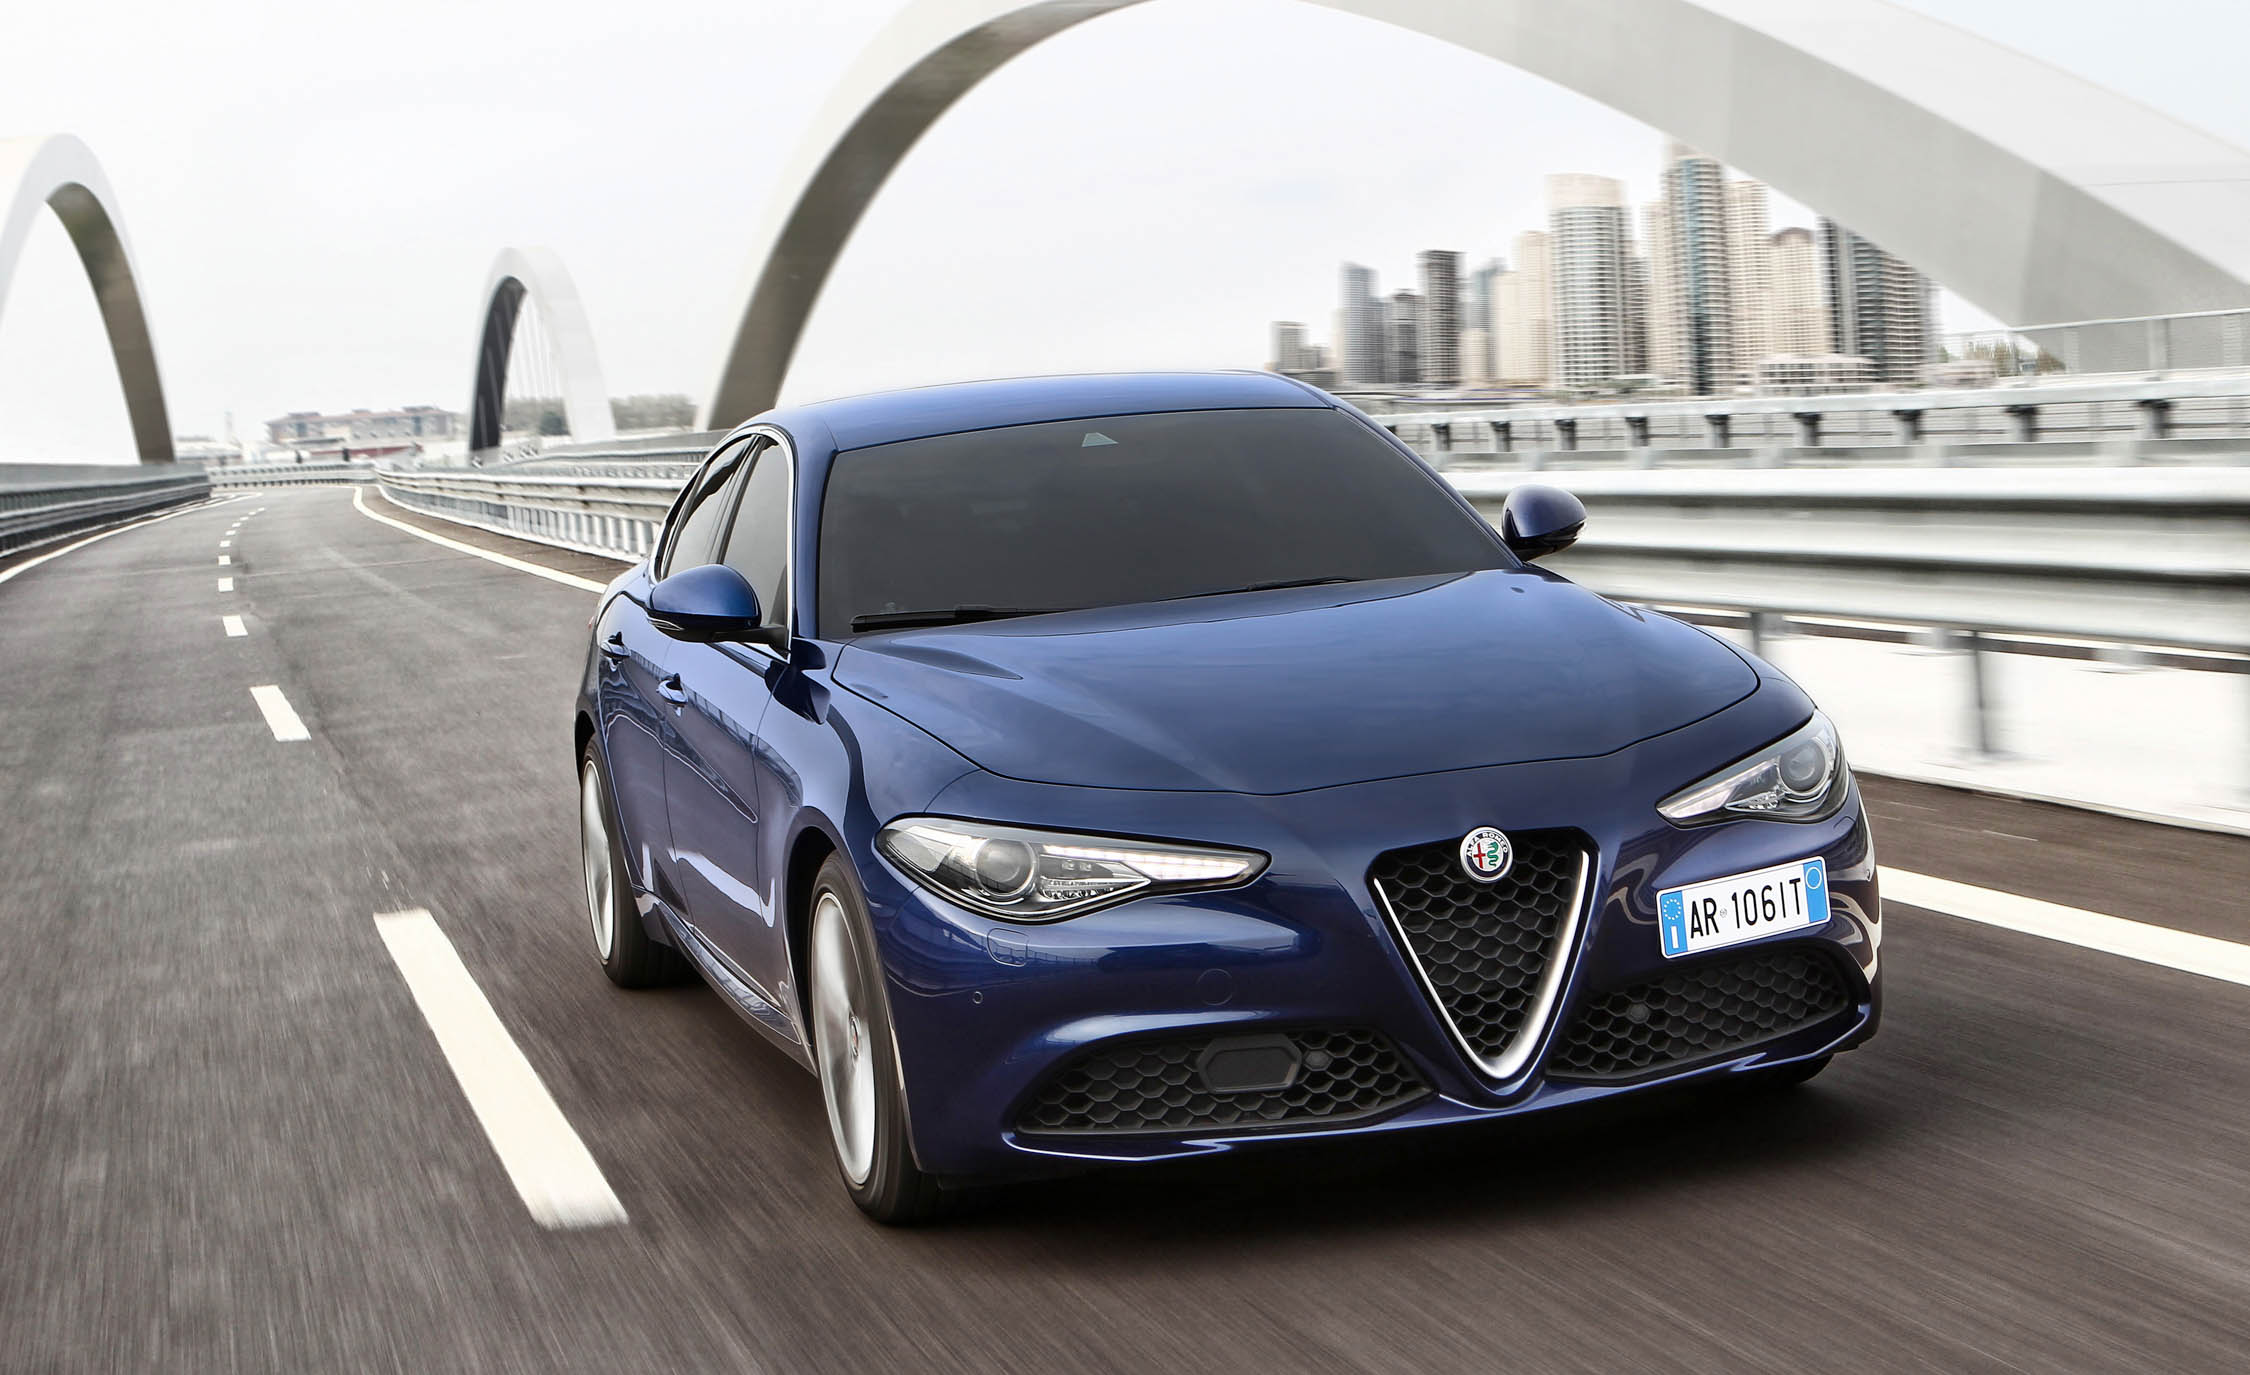 2017 Alfa Romeo Giulia (Photo 6 of 30)